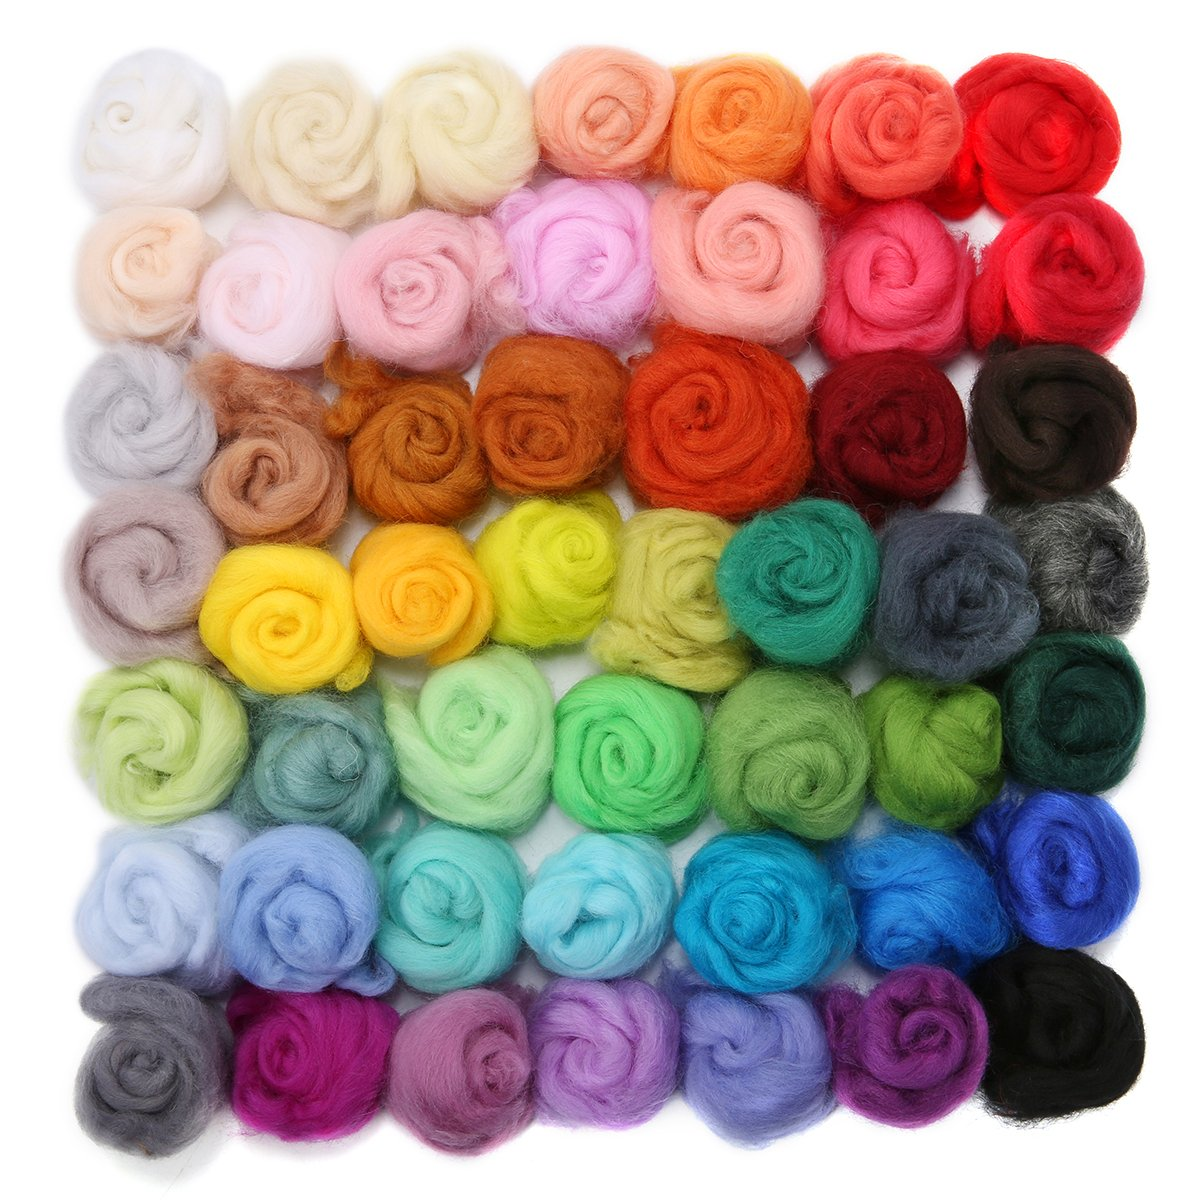 Jeteven 50 Colors Merino Wool Fibre Roving Spinning Sewing Trimming For Needle Felting DIY Craft (5g per color) by Jeteven